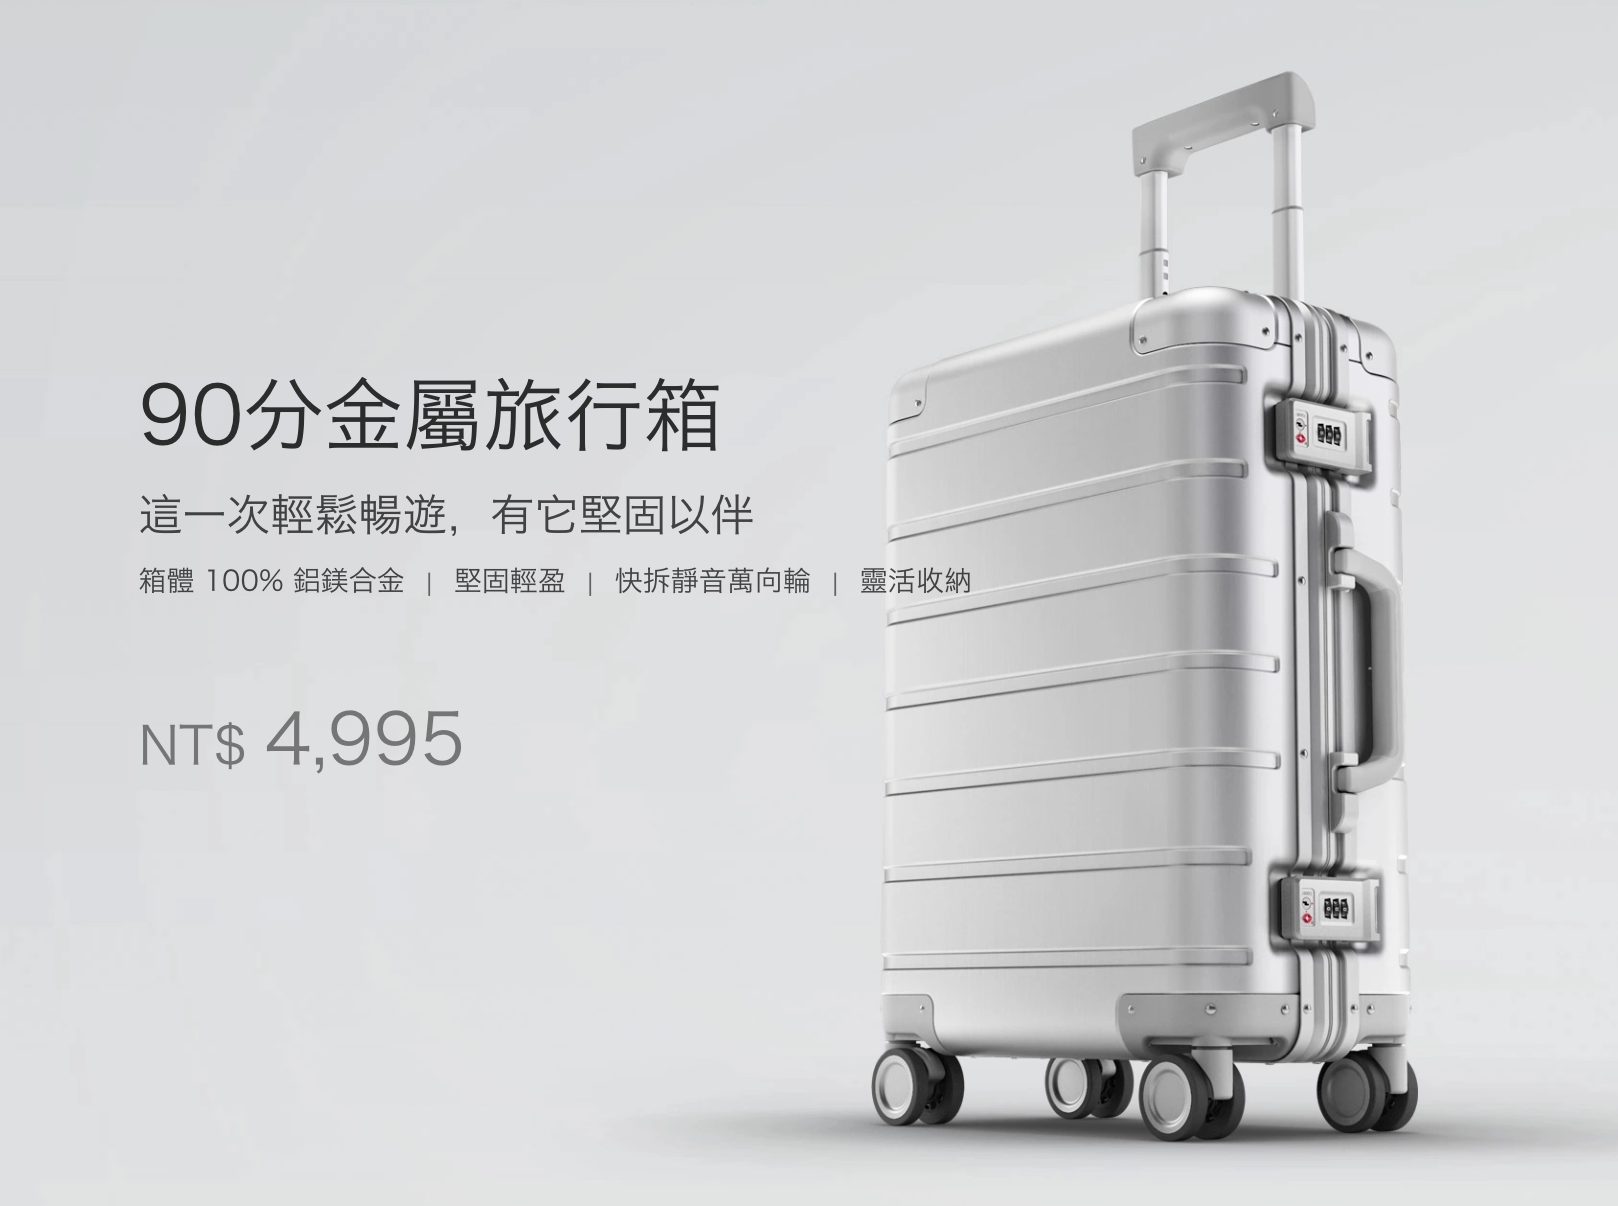 Suitcase, Baggage, Travel, Aluminium, Aluminium alloy, Metal, Discounts and allowances, Alloy, , Xiaomi, xiaomi metal travel suitcase, product, product, cylinder, brand